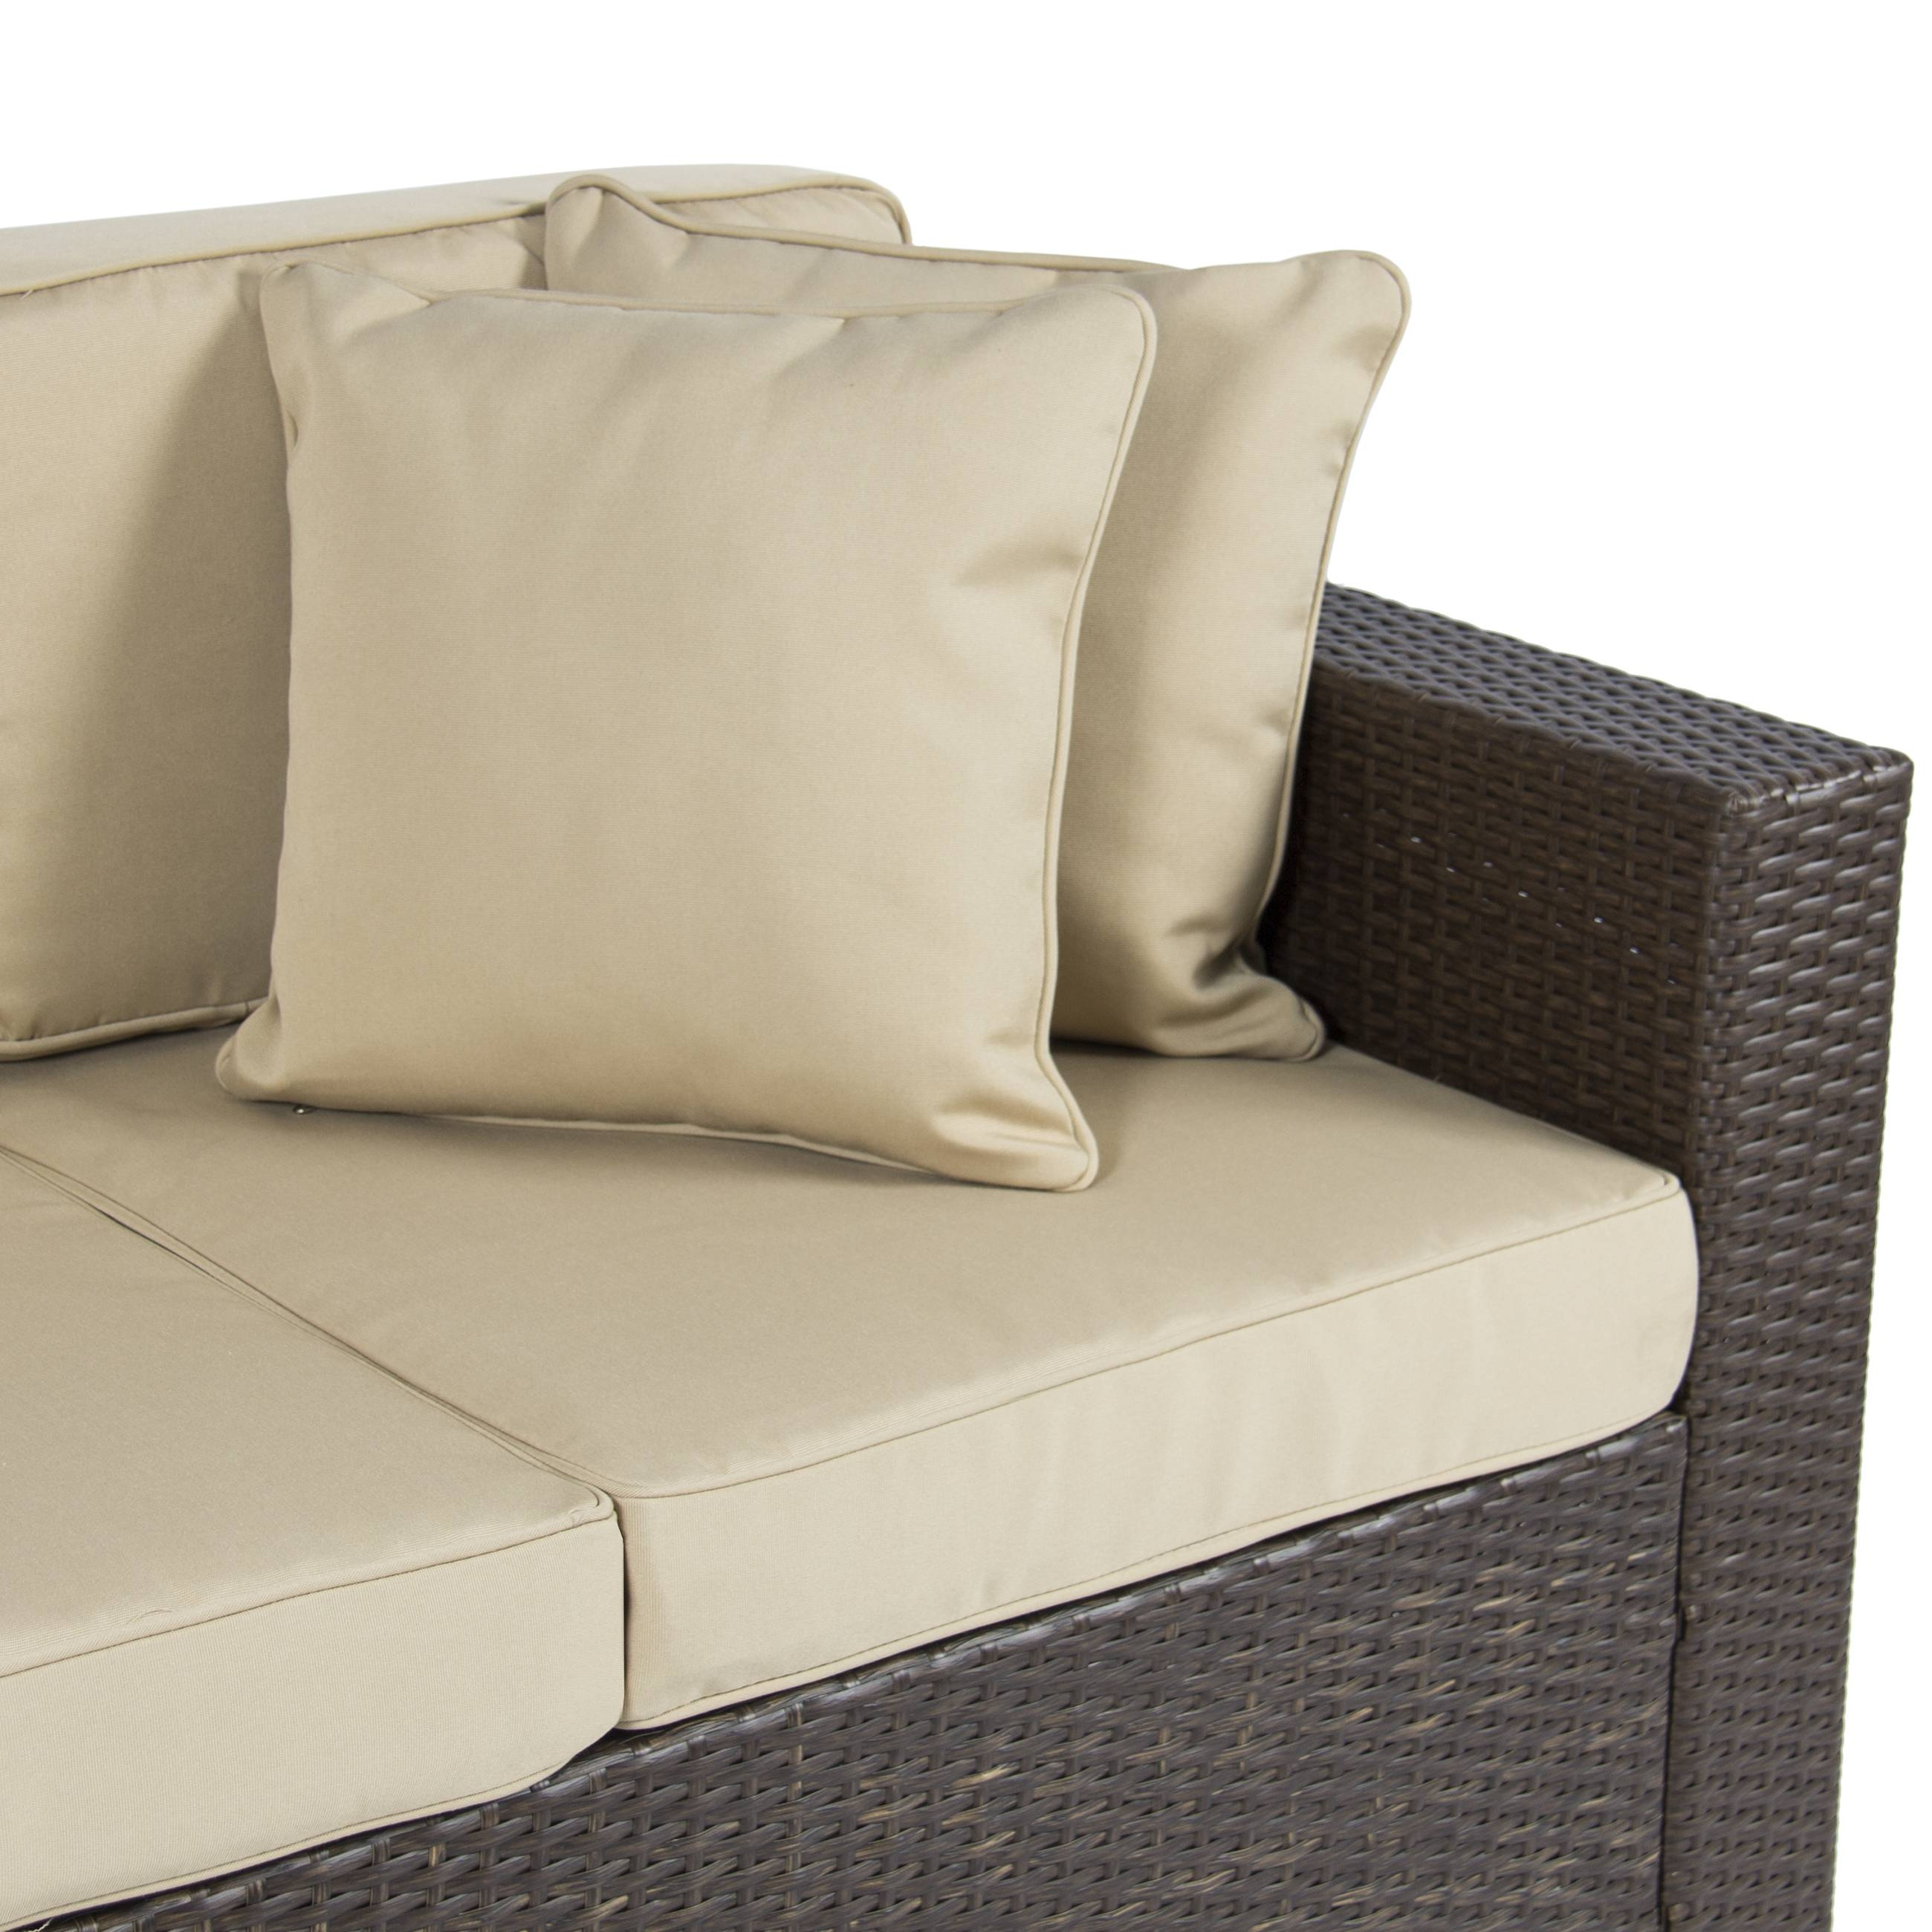 Outdoor Wicker Patio Furniture Sofa 3 Seater Luxury Comfort Brown intended for Comfortable Sofas and Chairs (Image 15 of 30)